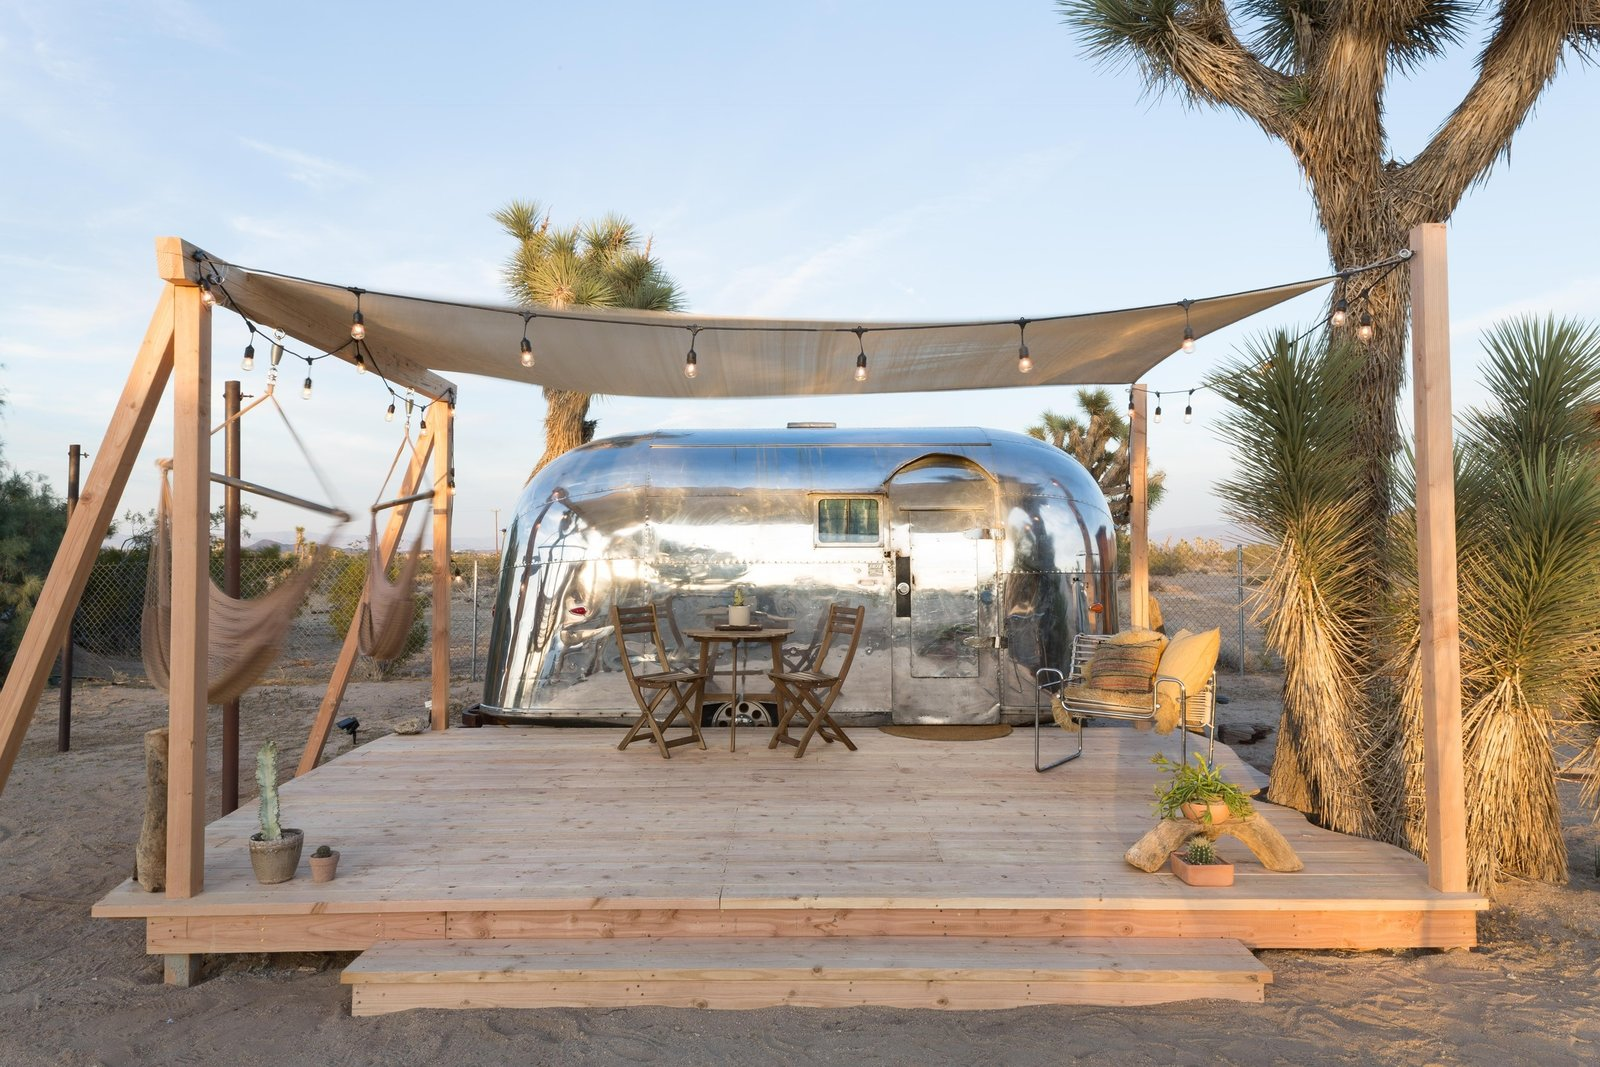 Joshua Tree Is Now Home To A Chic Airstream Oasis